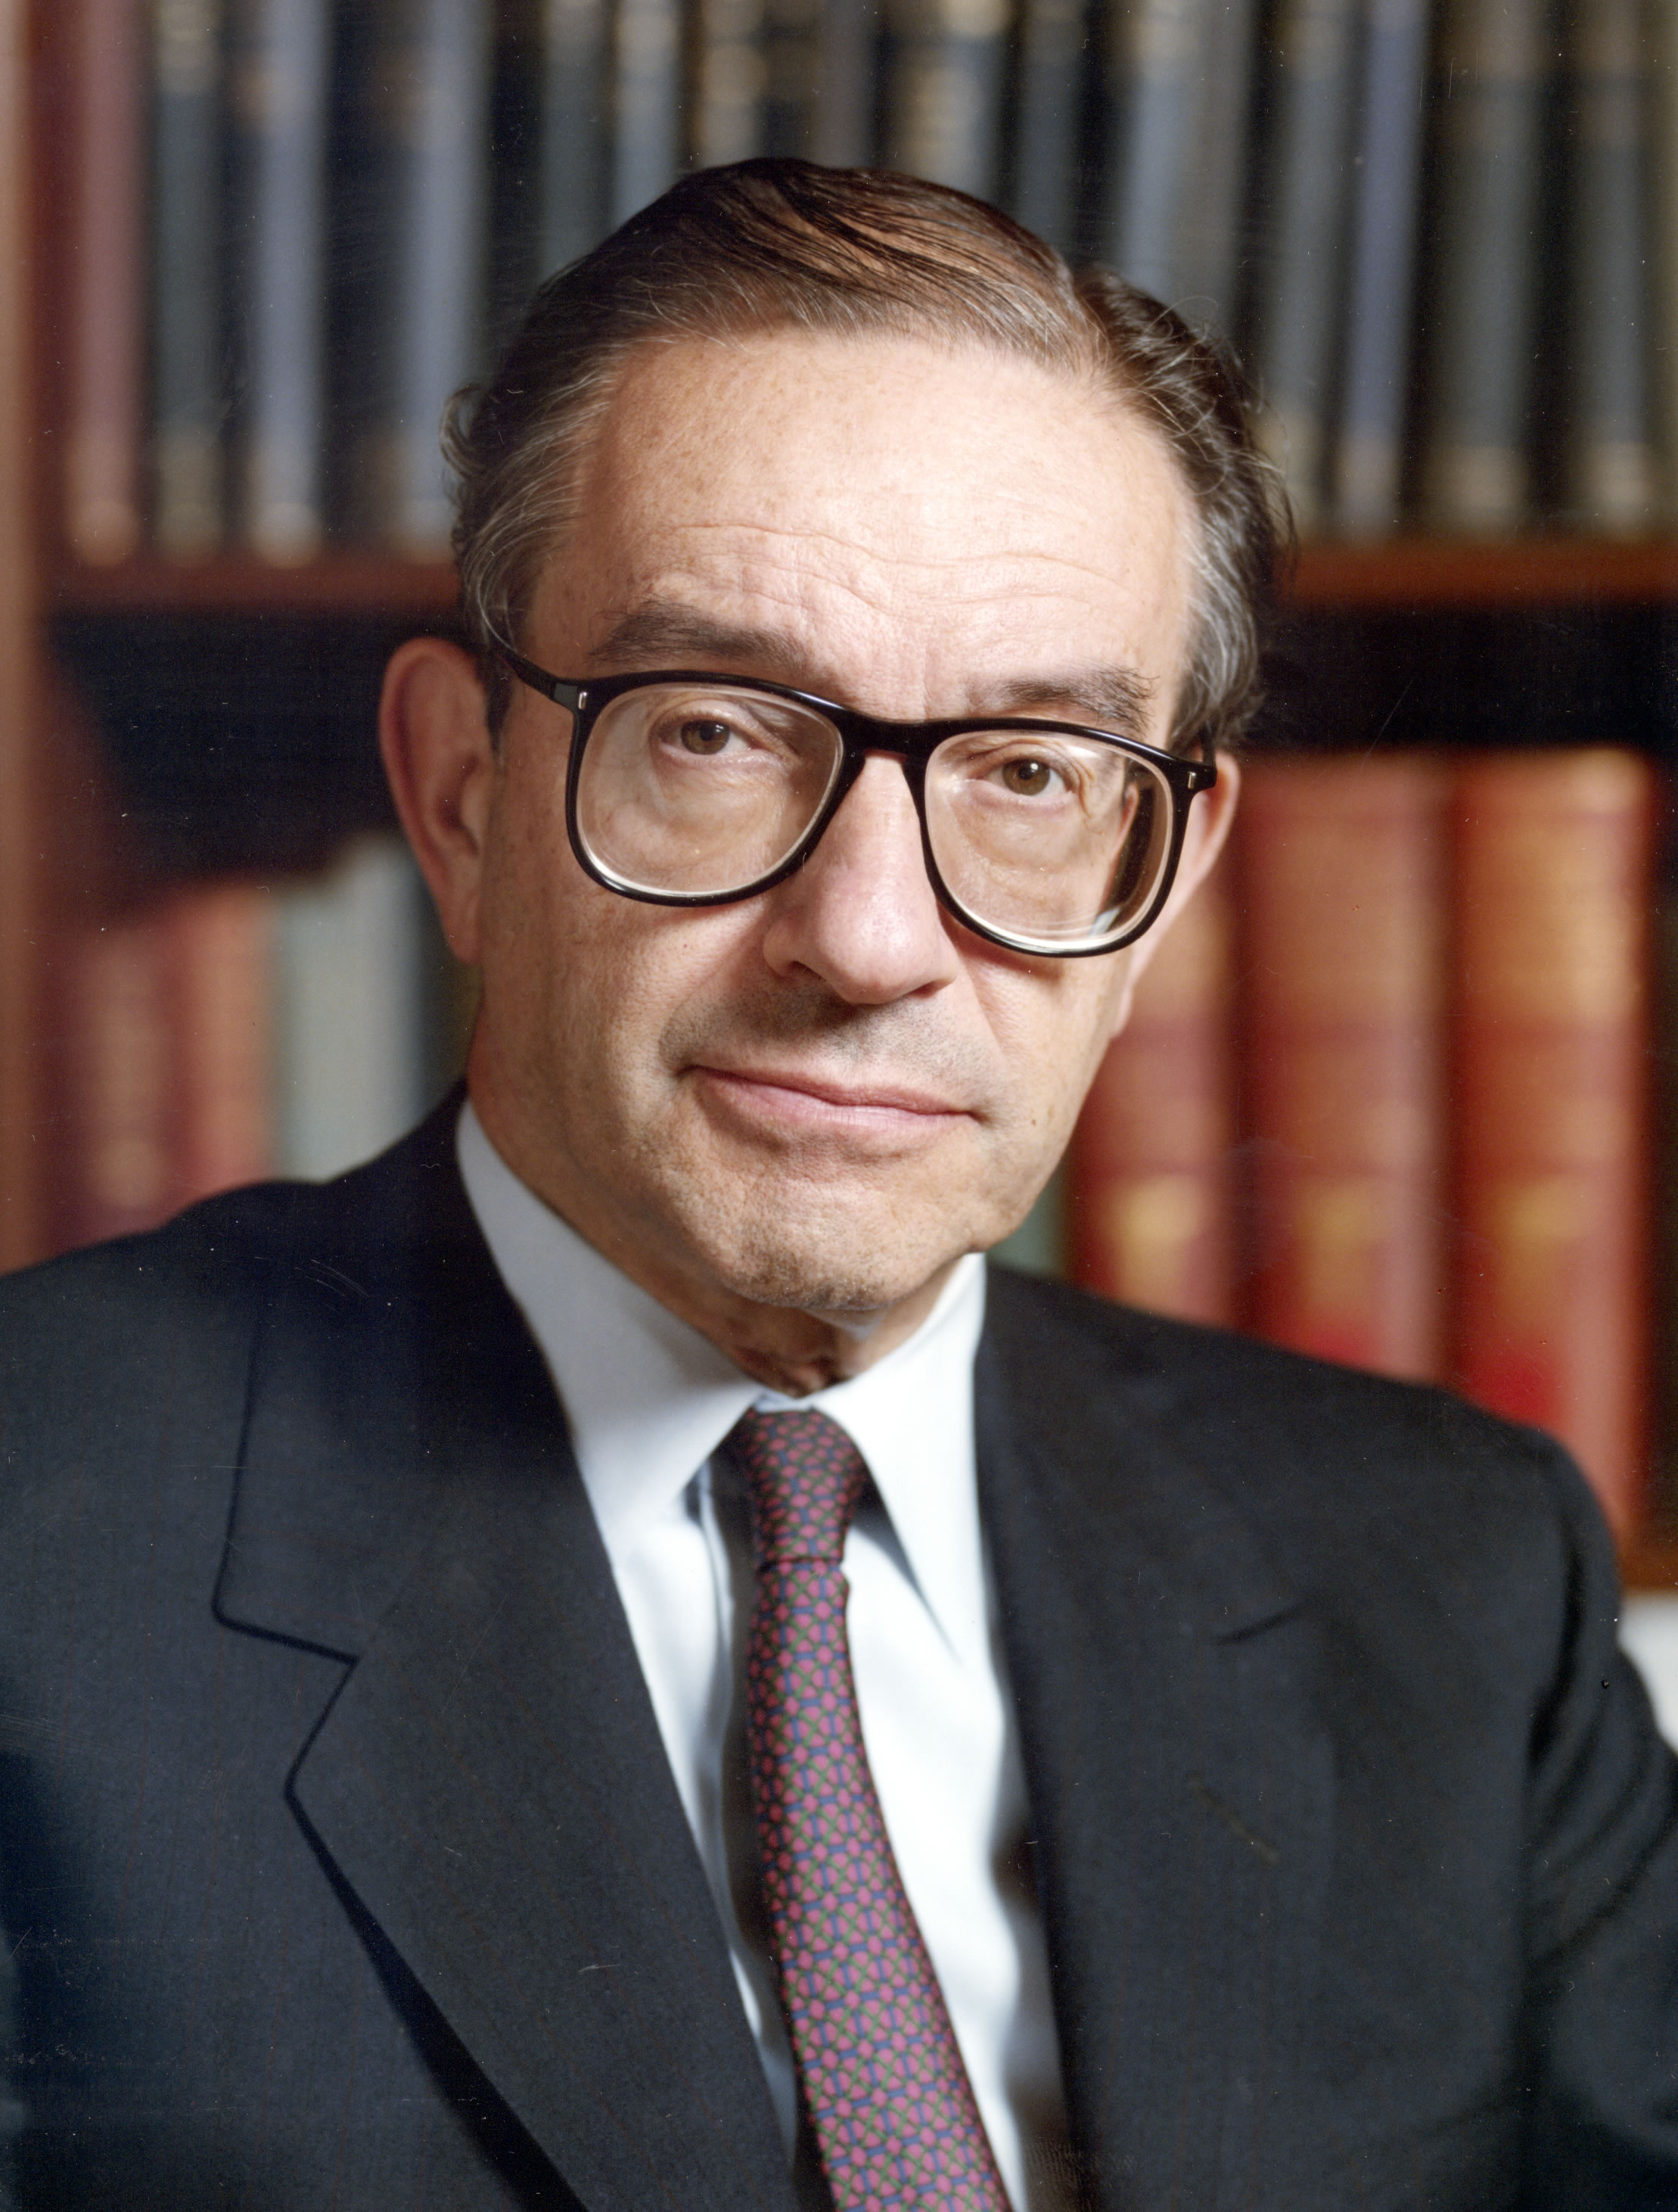 http://upload.wikimedia.org/wikipedia/commons/e/e9/Alan_Greenspan_color_photo_portrait.jpg